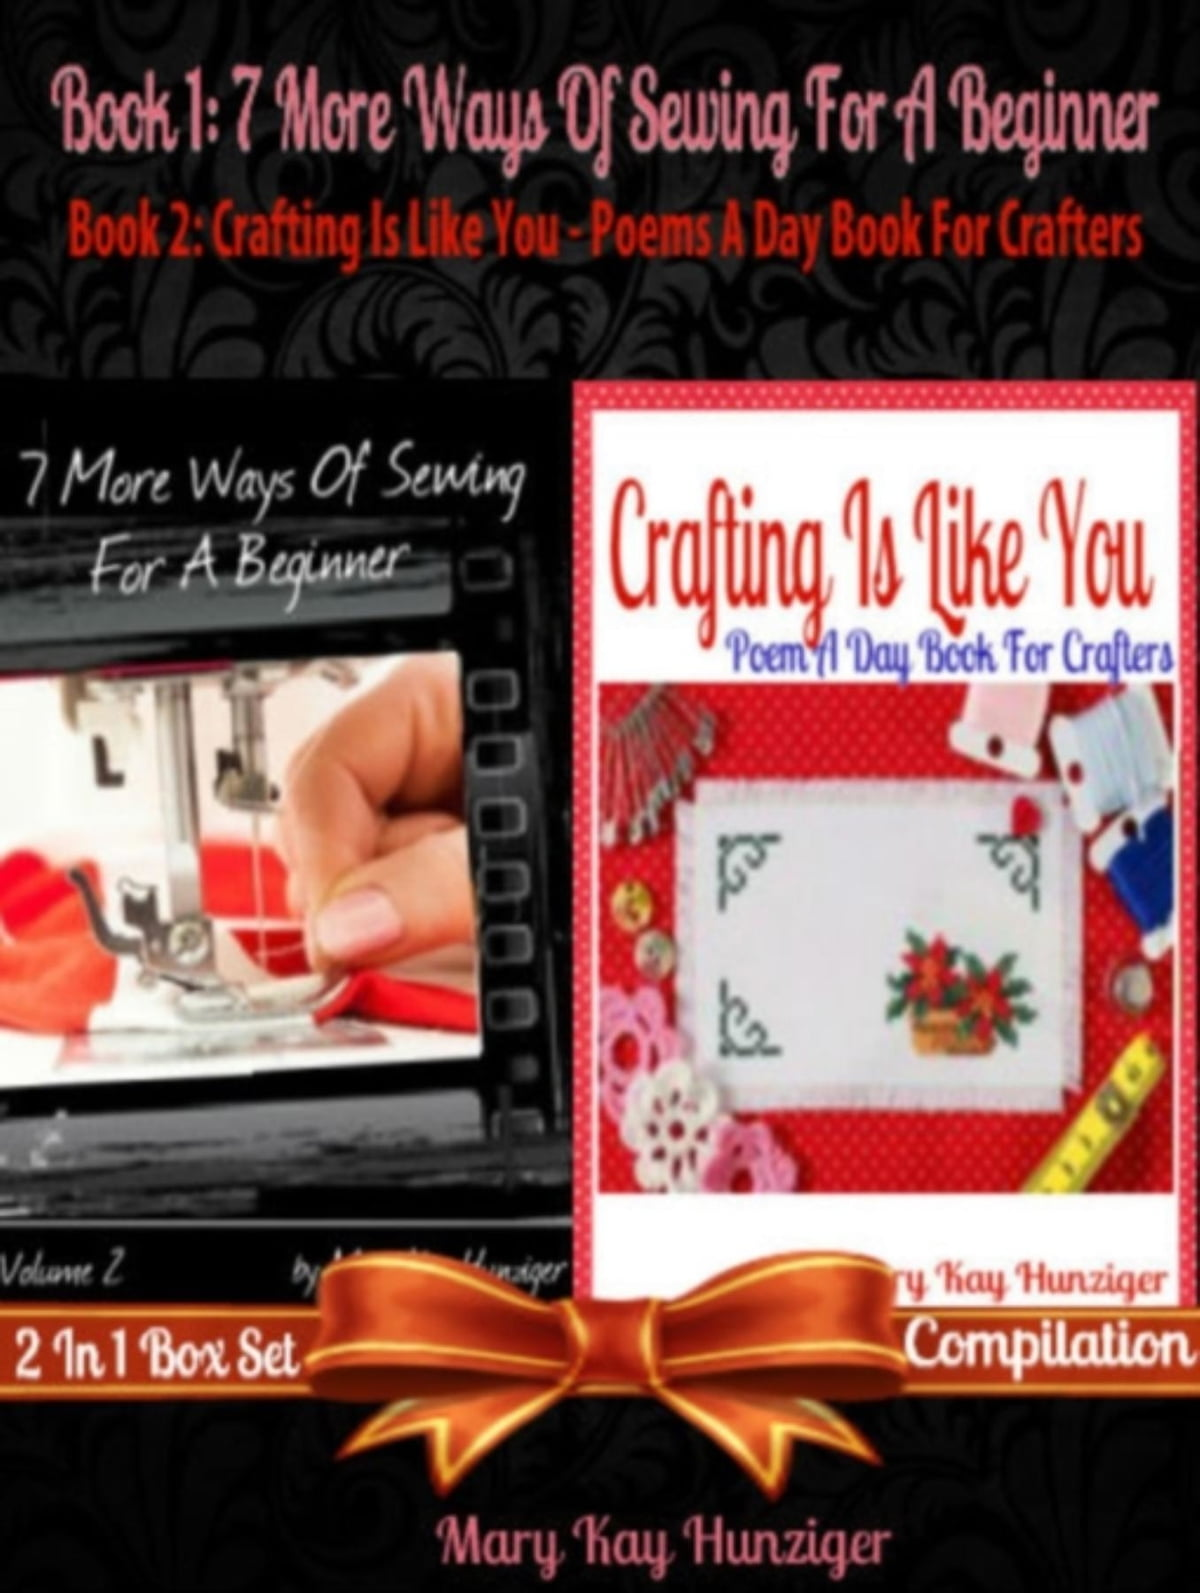 7 More Ways Of Sewing For Beginner With 300+ Resources eBook by Hunziger  Mary Kay - 9781634280433 | Rakuten Kobo